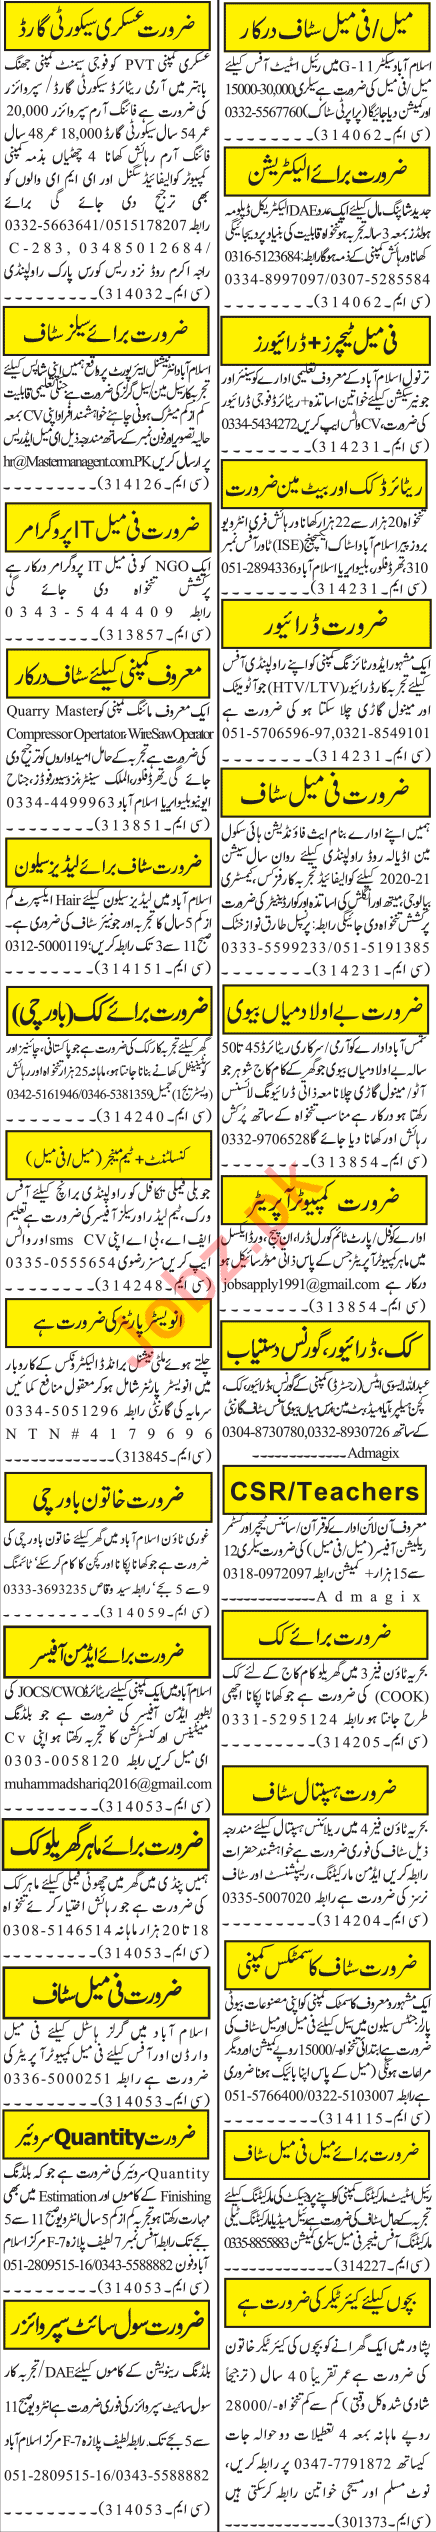 Jang Sunday Classified Ads 19 Jan 2020 for Administration